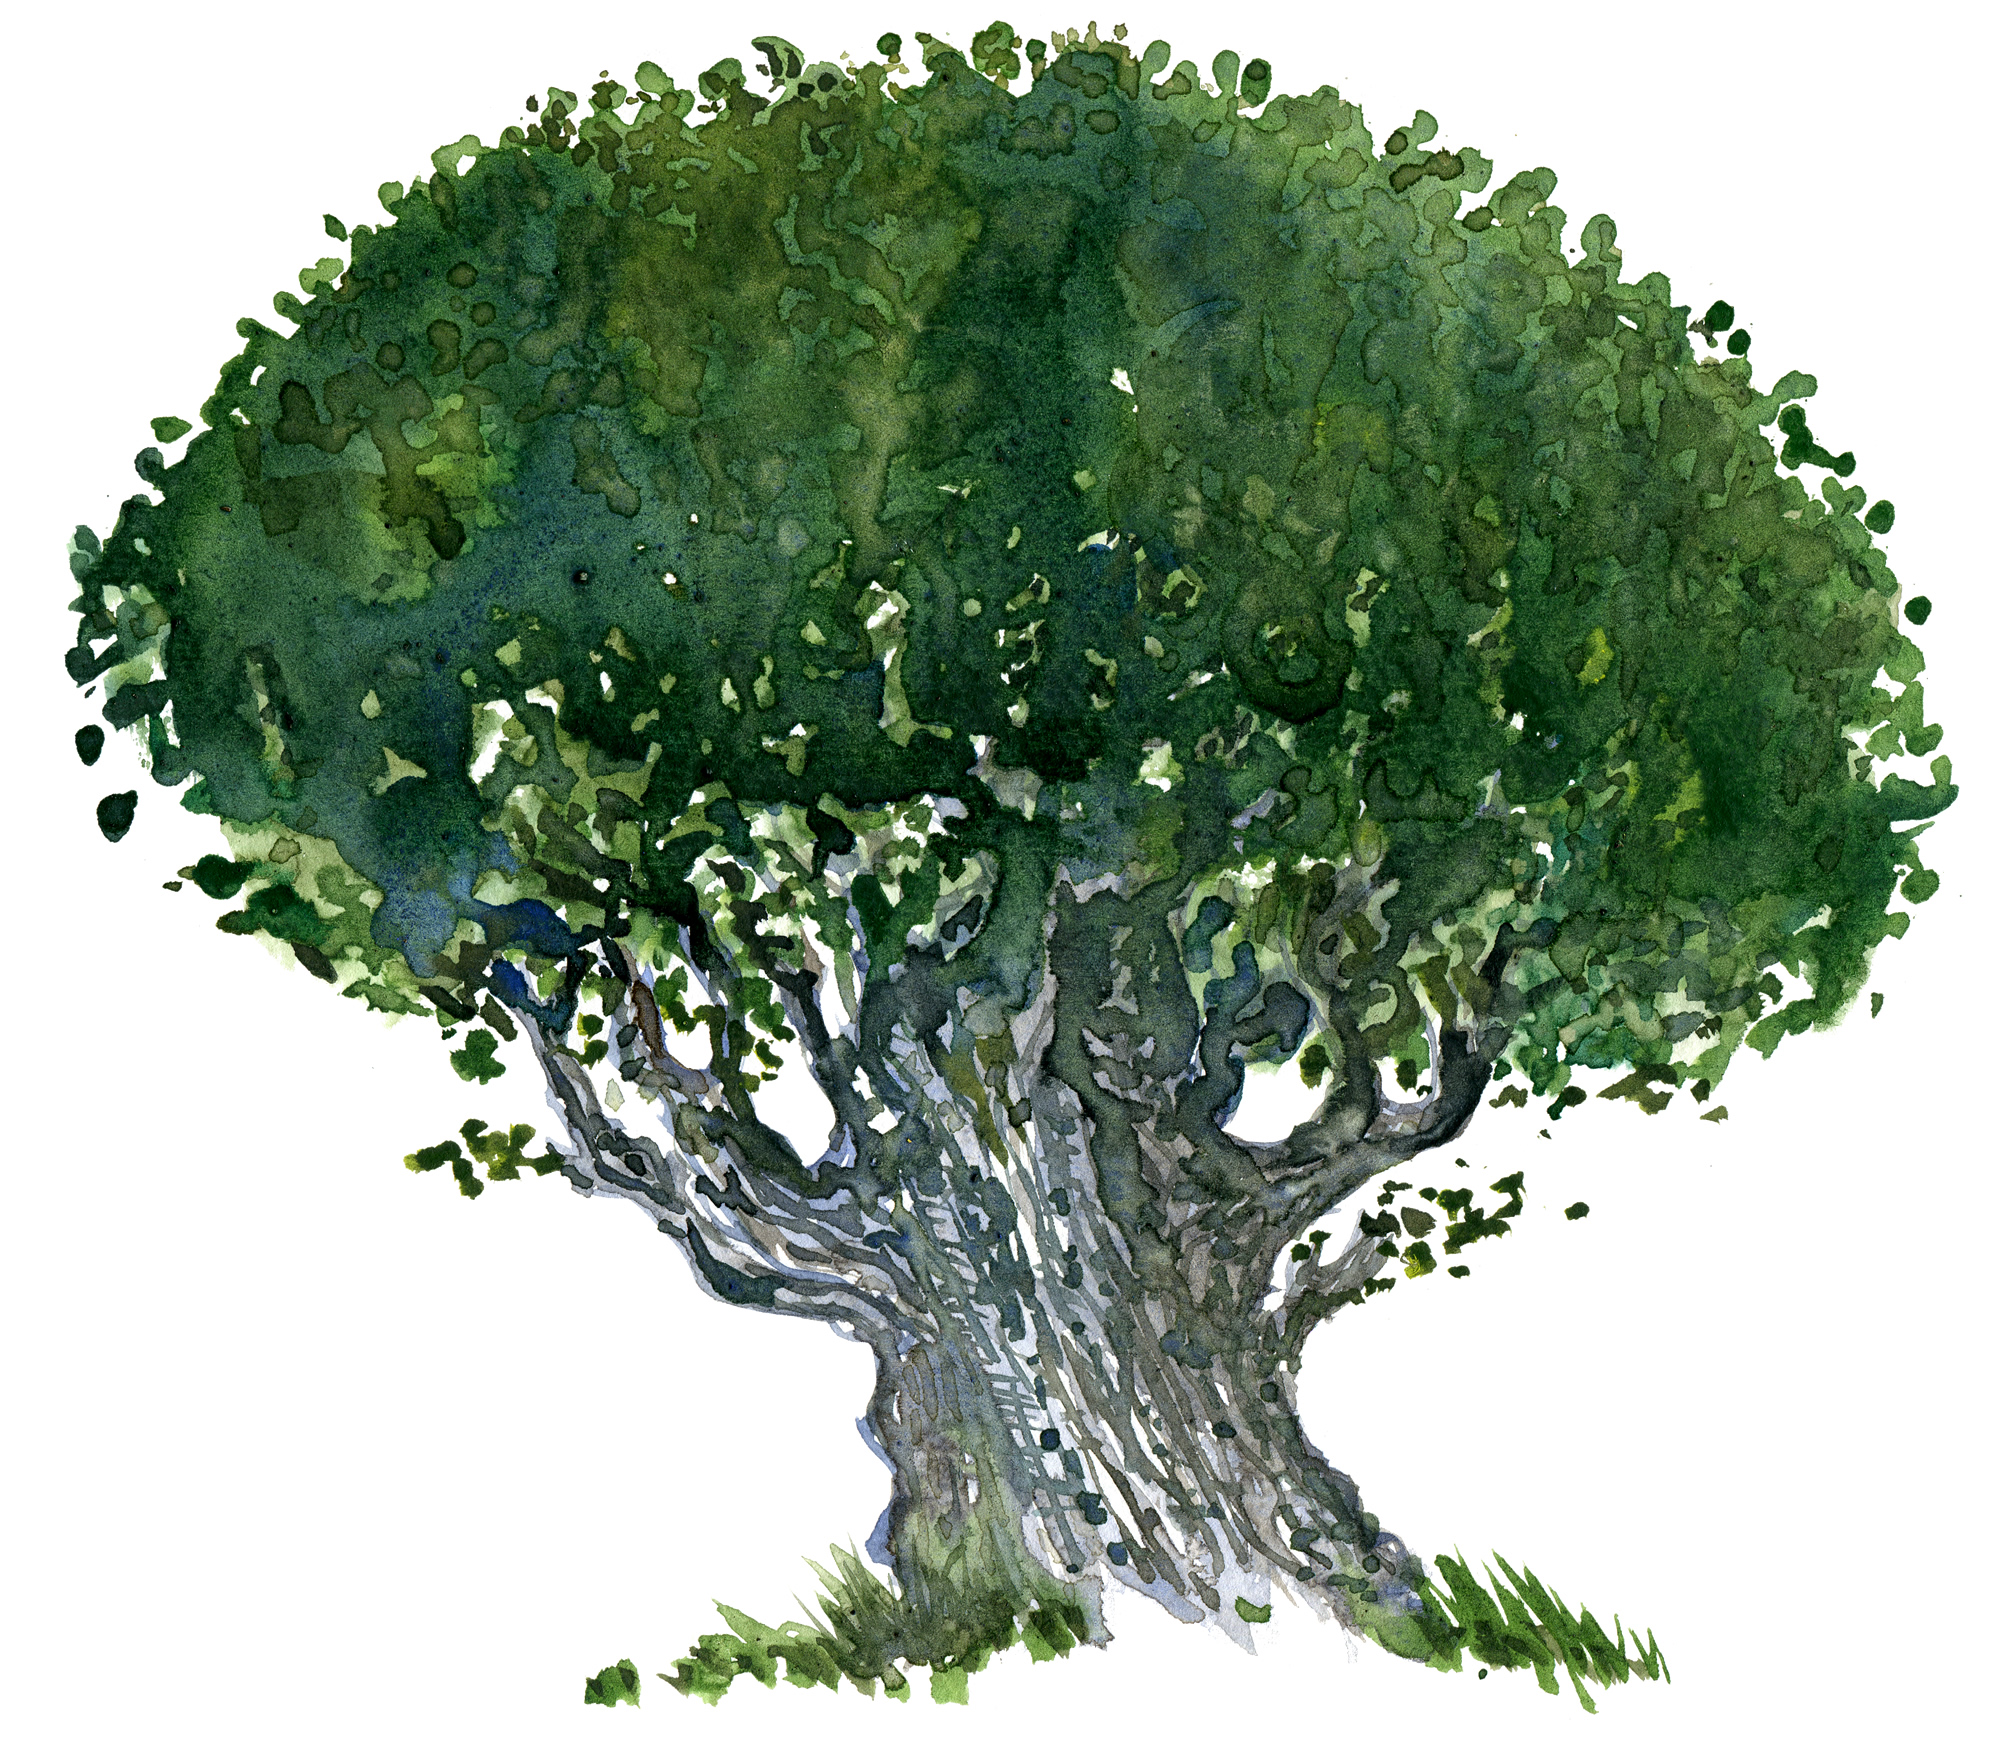 watercolor-tree-sketch | The Hiking Artist project by Frits Ahlefeldt for Tree Drawing With Watercolor  34eri